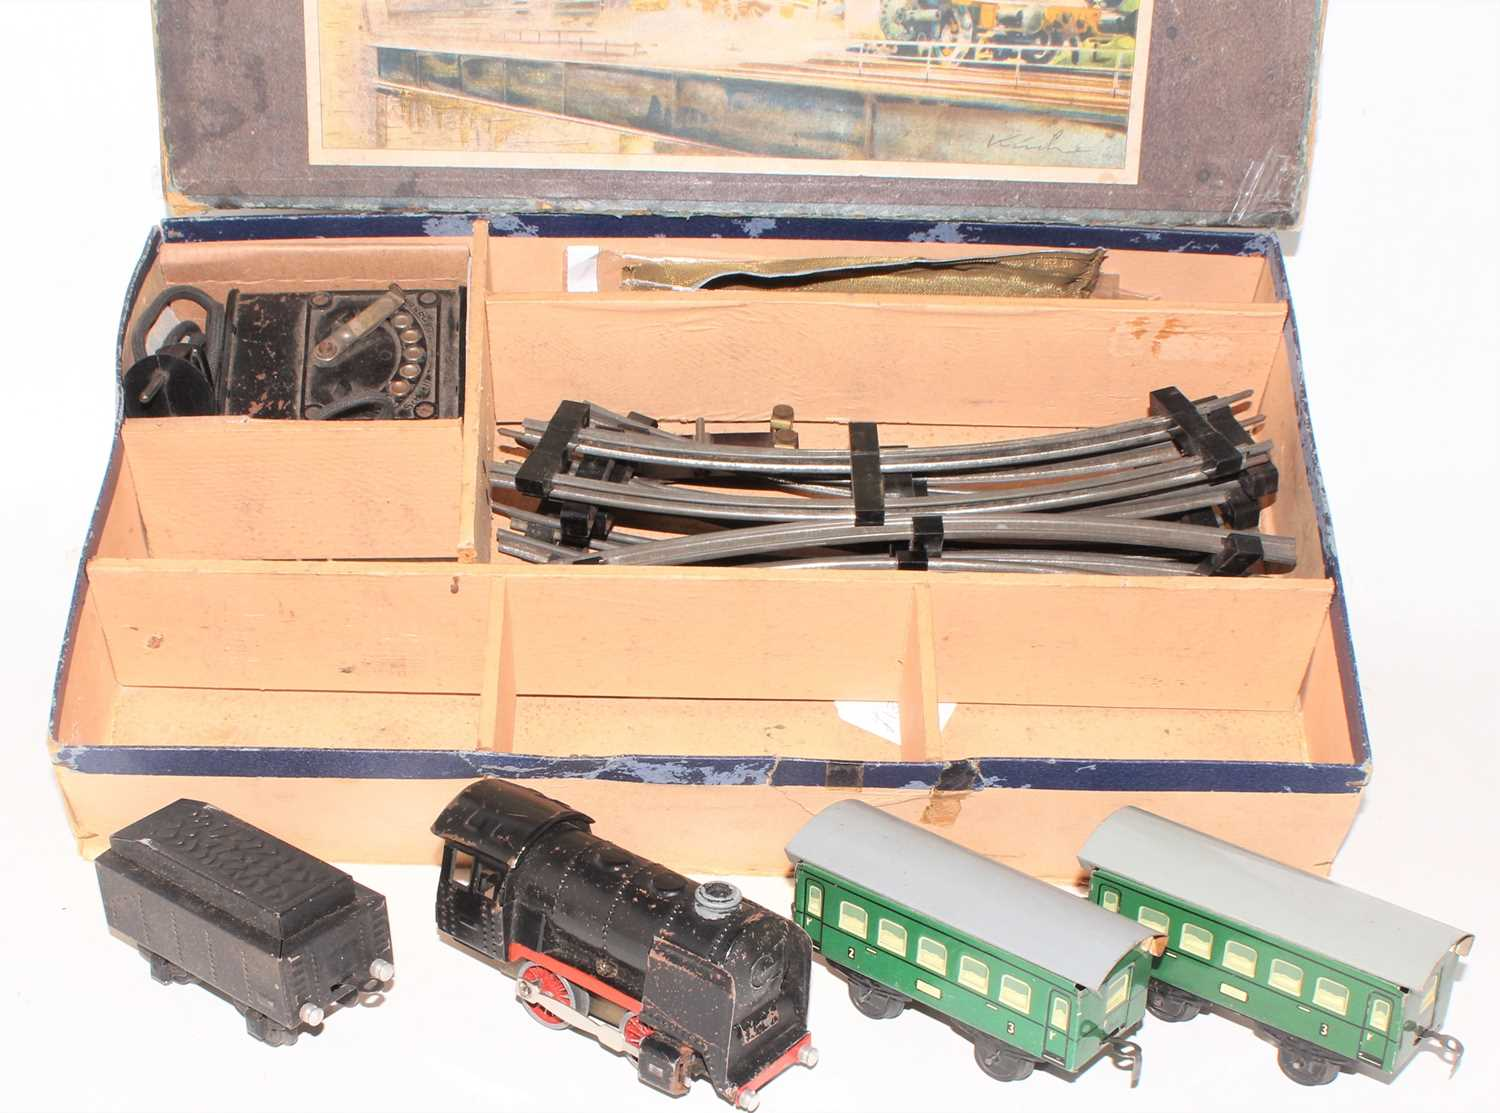 Karl Bub electric train set comprising 0-4-0 loco and tender (black with red wheels and valance), - Image 2 of 3